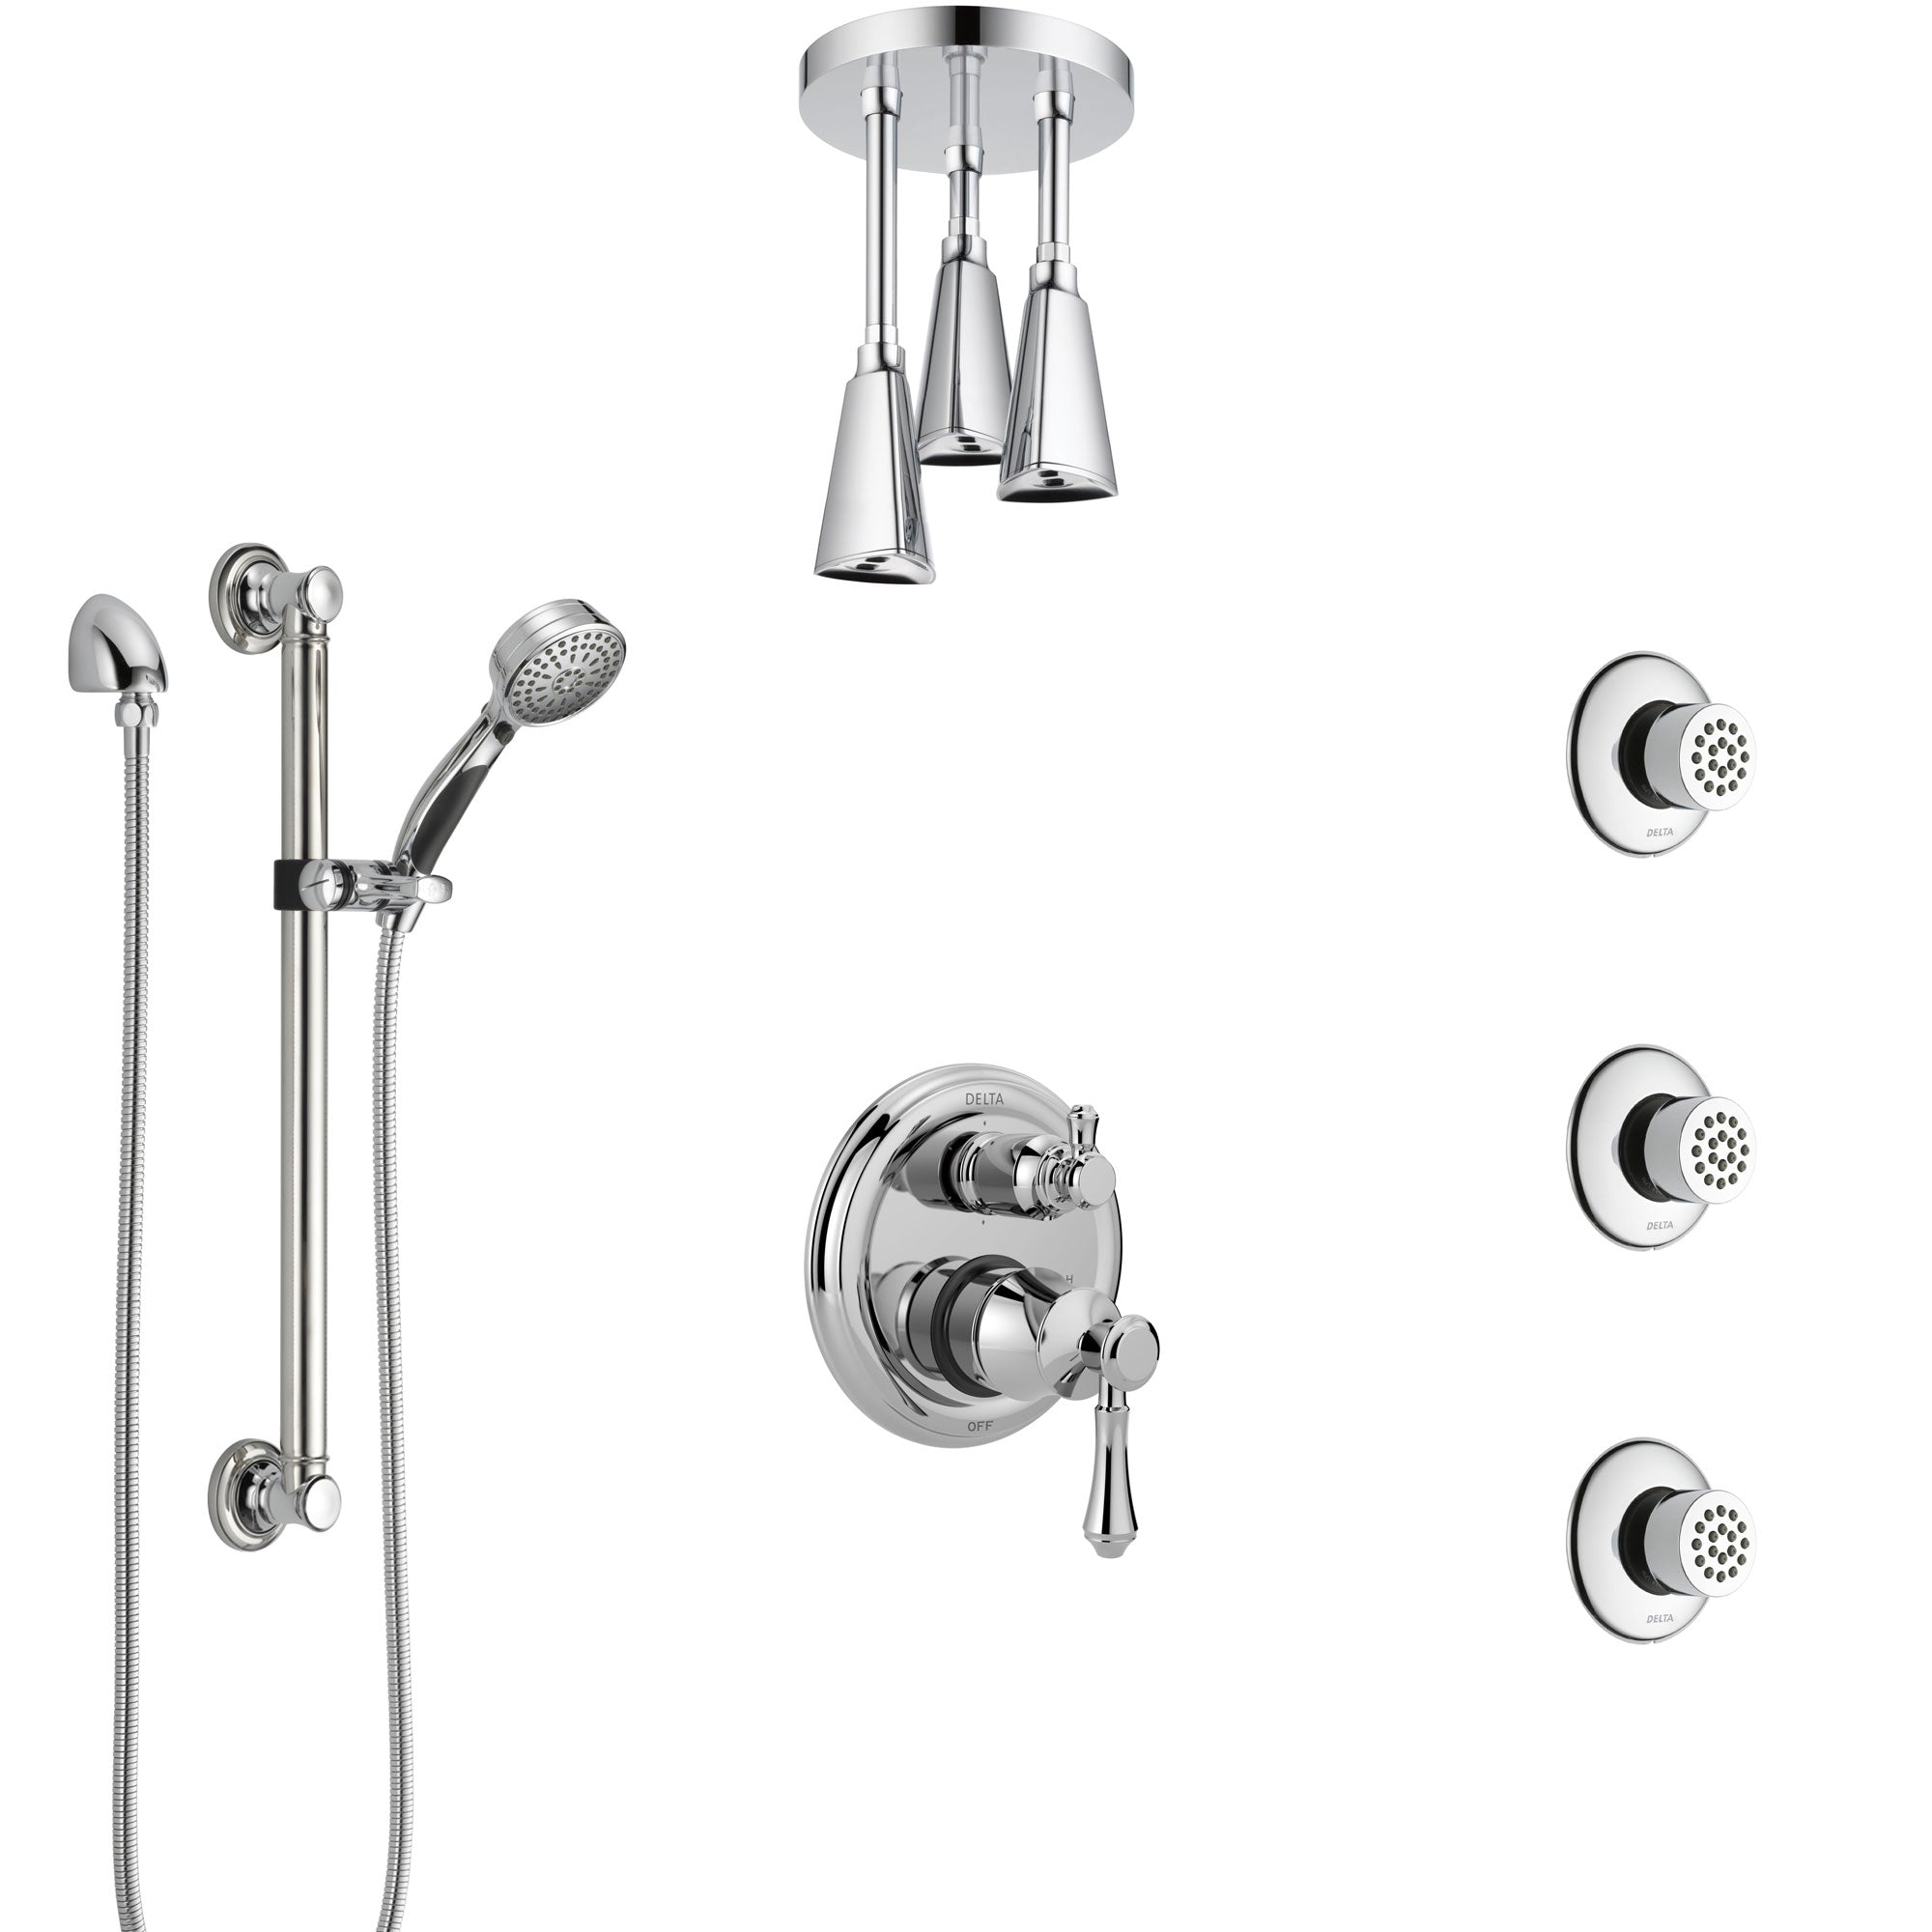 Delta Cassidy Chrome Shower System with Control Handle, Integrated Diverter, Ceiling Showerhead, 3 Body Sprays, and Grab Bar Hand Shower SS2499712